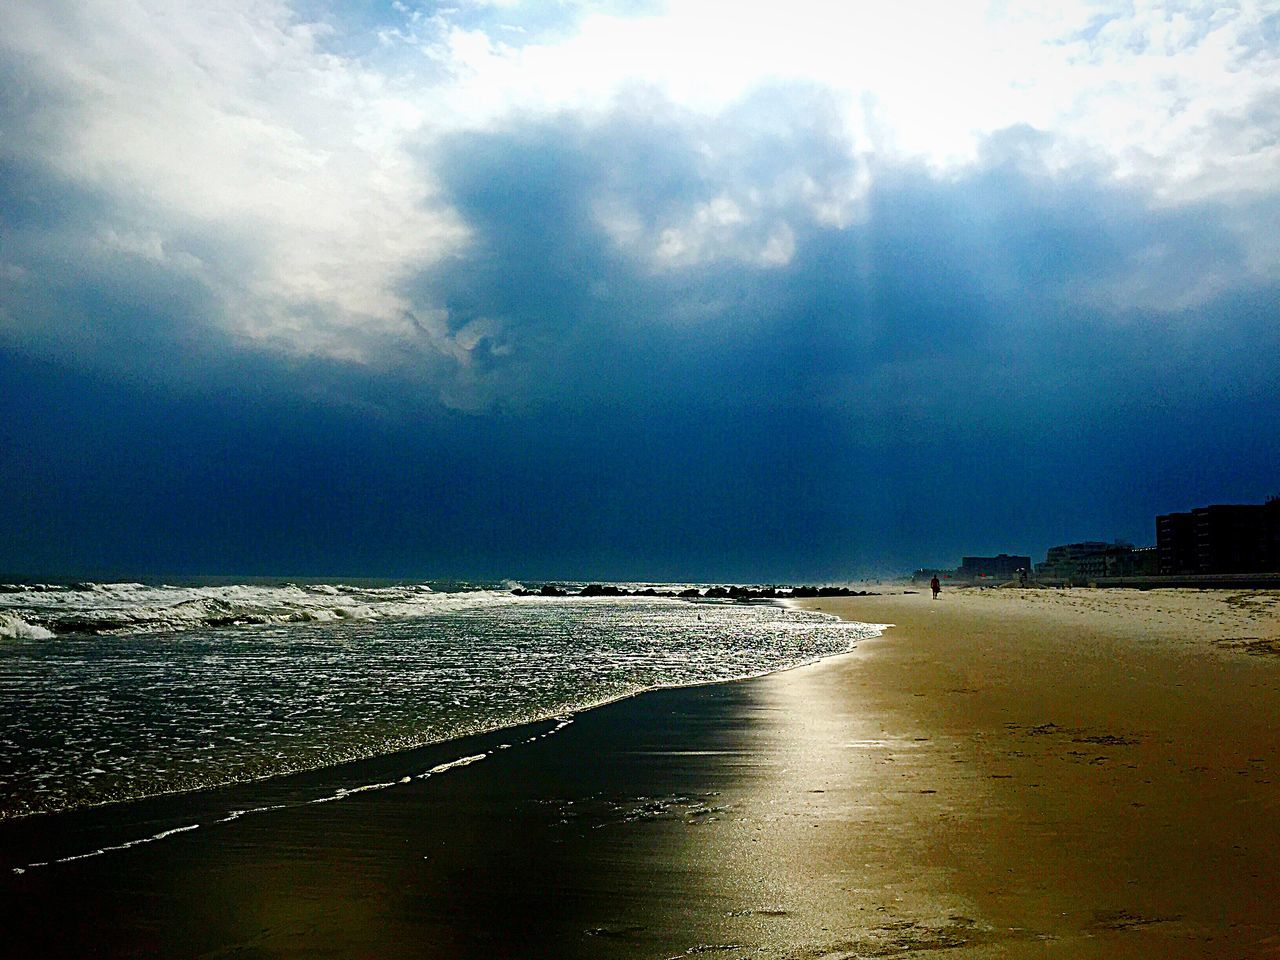 sky, sea, water, beauty in nature, scenics, cloud - sky, tranquility, beach, tranquil scene, nature, outdoors, no people, sand, day, horizon over water